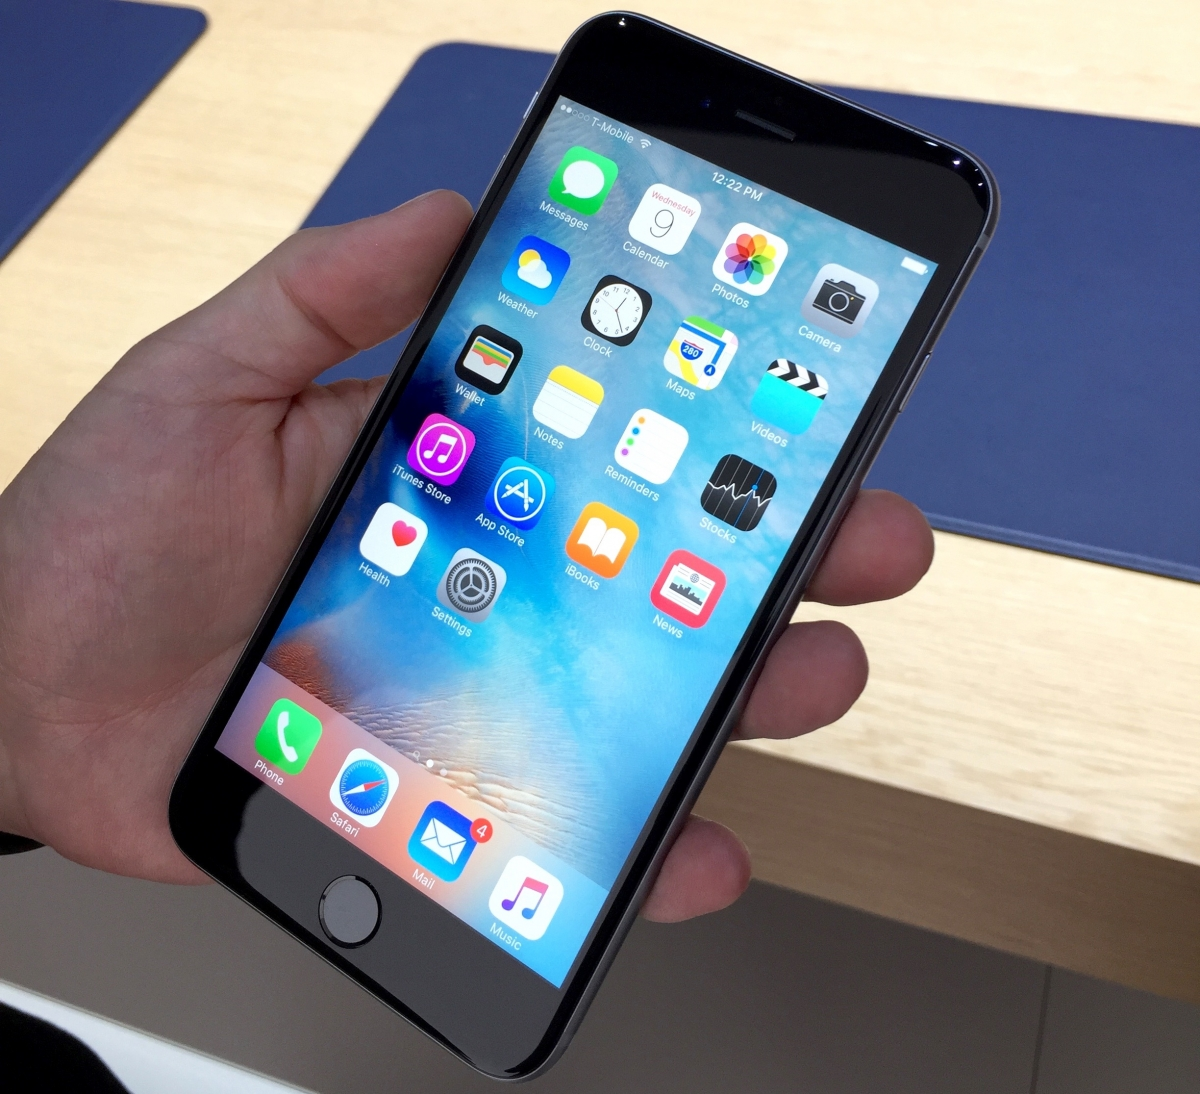 iPhone 6s Plus hands-on